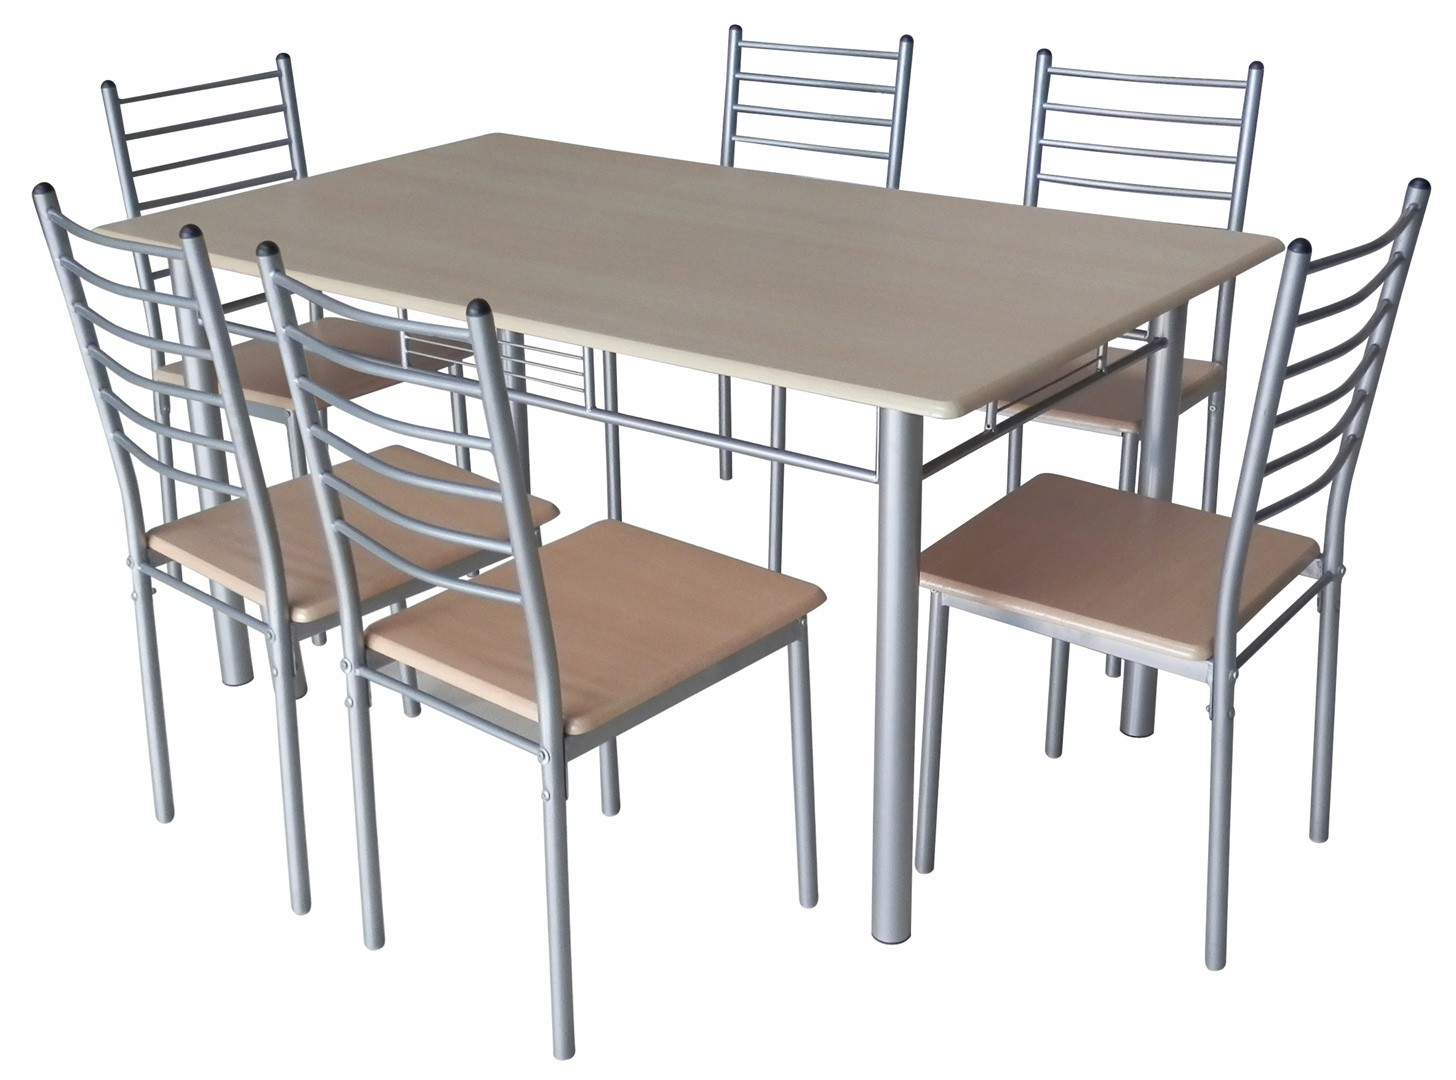 Ensemble table et chaises de cuisine but chaise id es for Ensemble table et chaise de cuisine